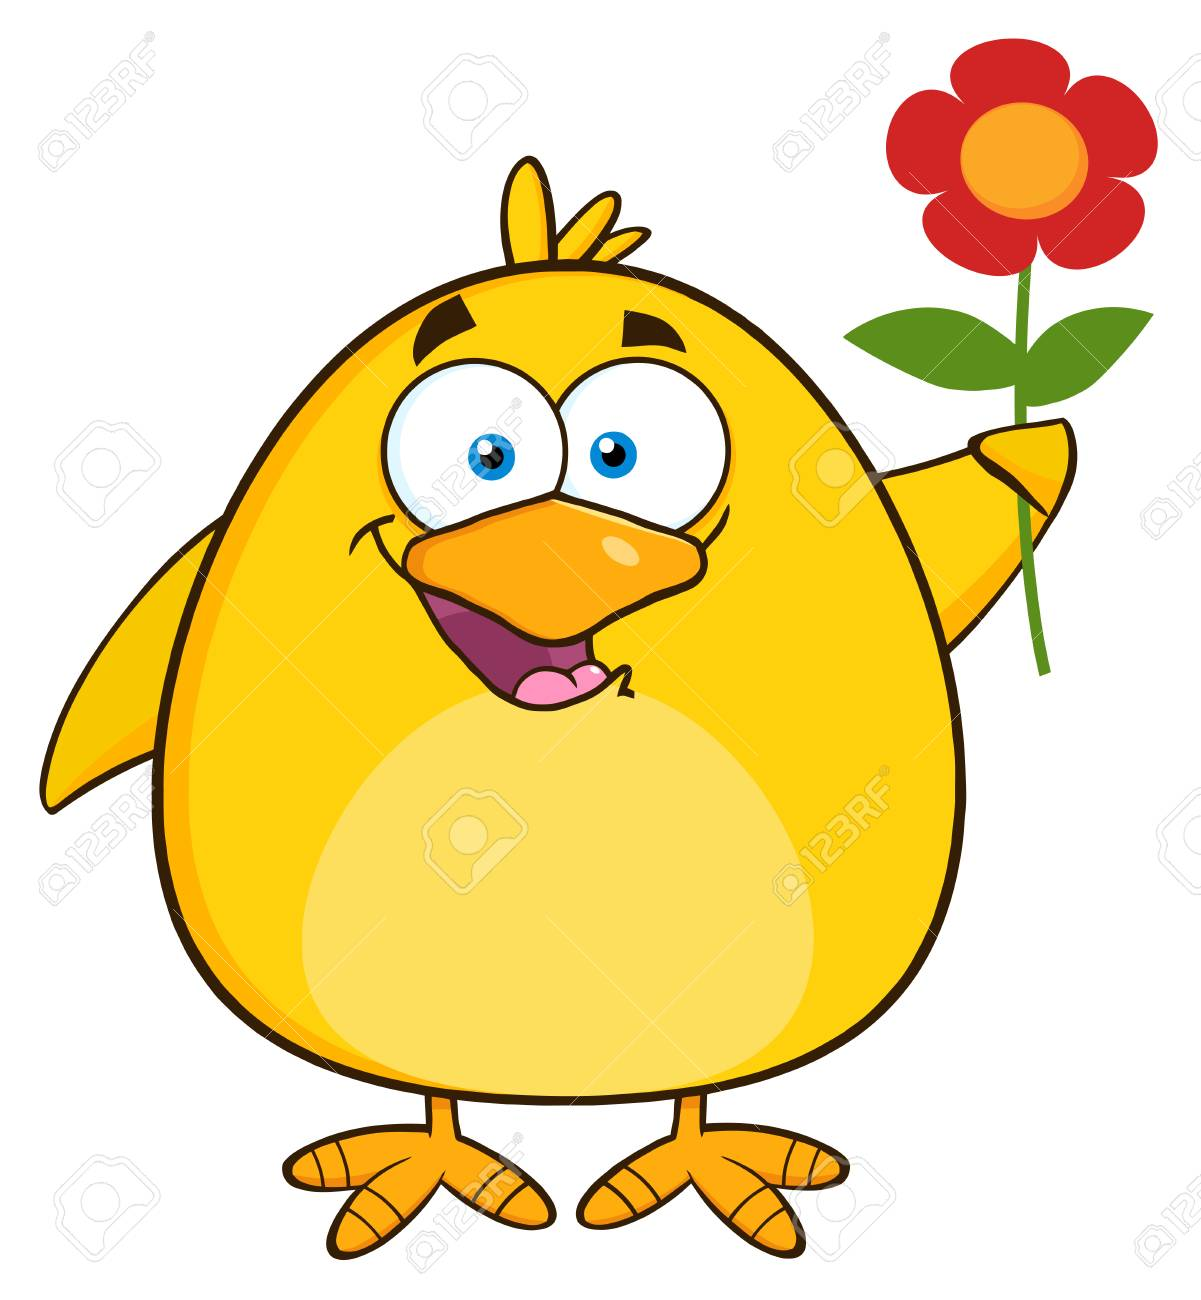 Happy yellow chick cartoon character with a red daisy flower happy yellow chick cartoon character with a red daisy flower illustration isolated on white stock izmirmasajfo